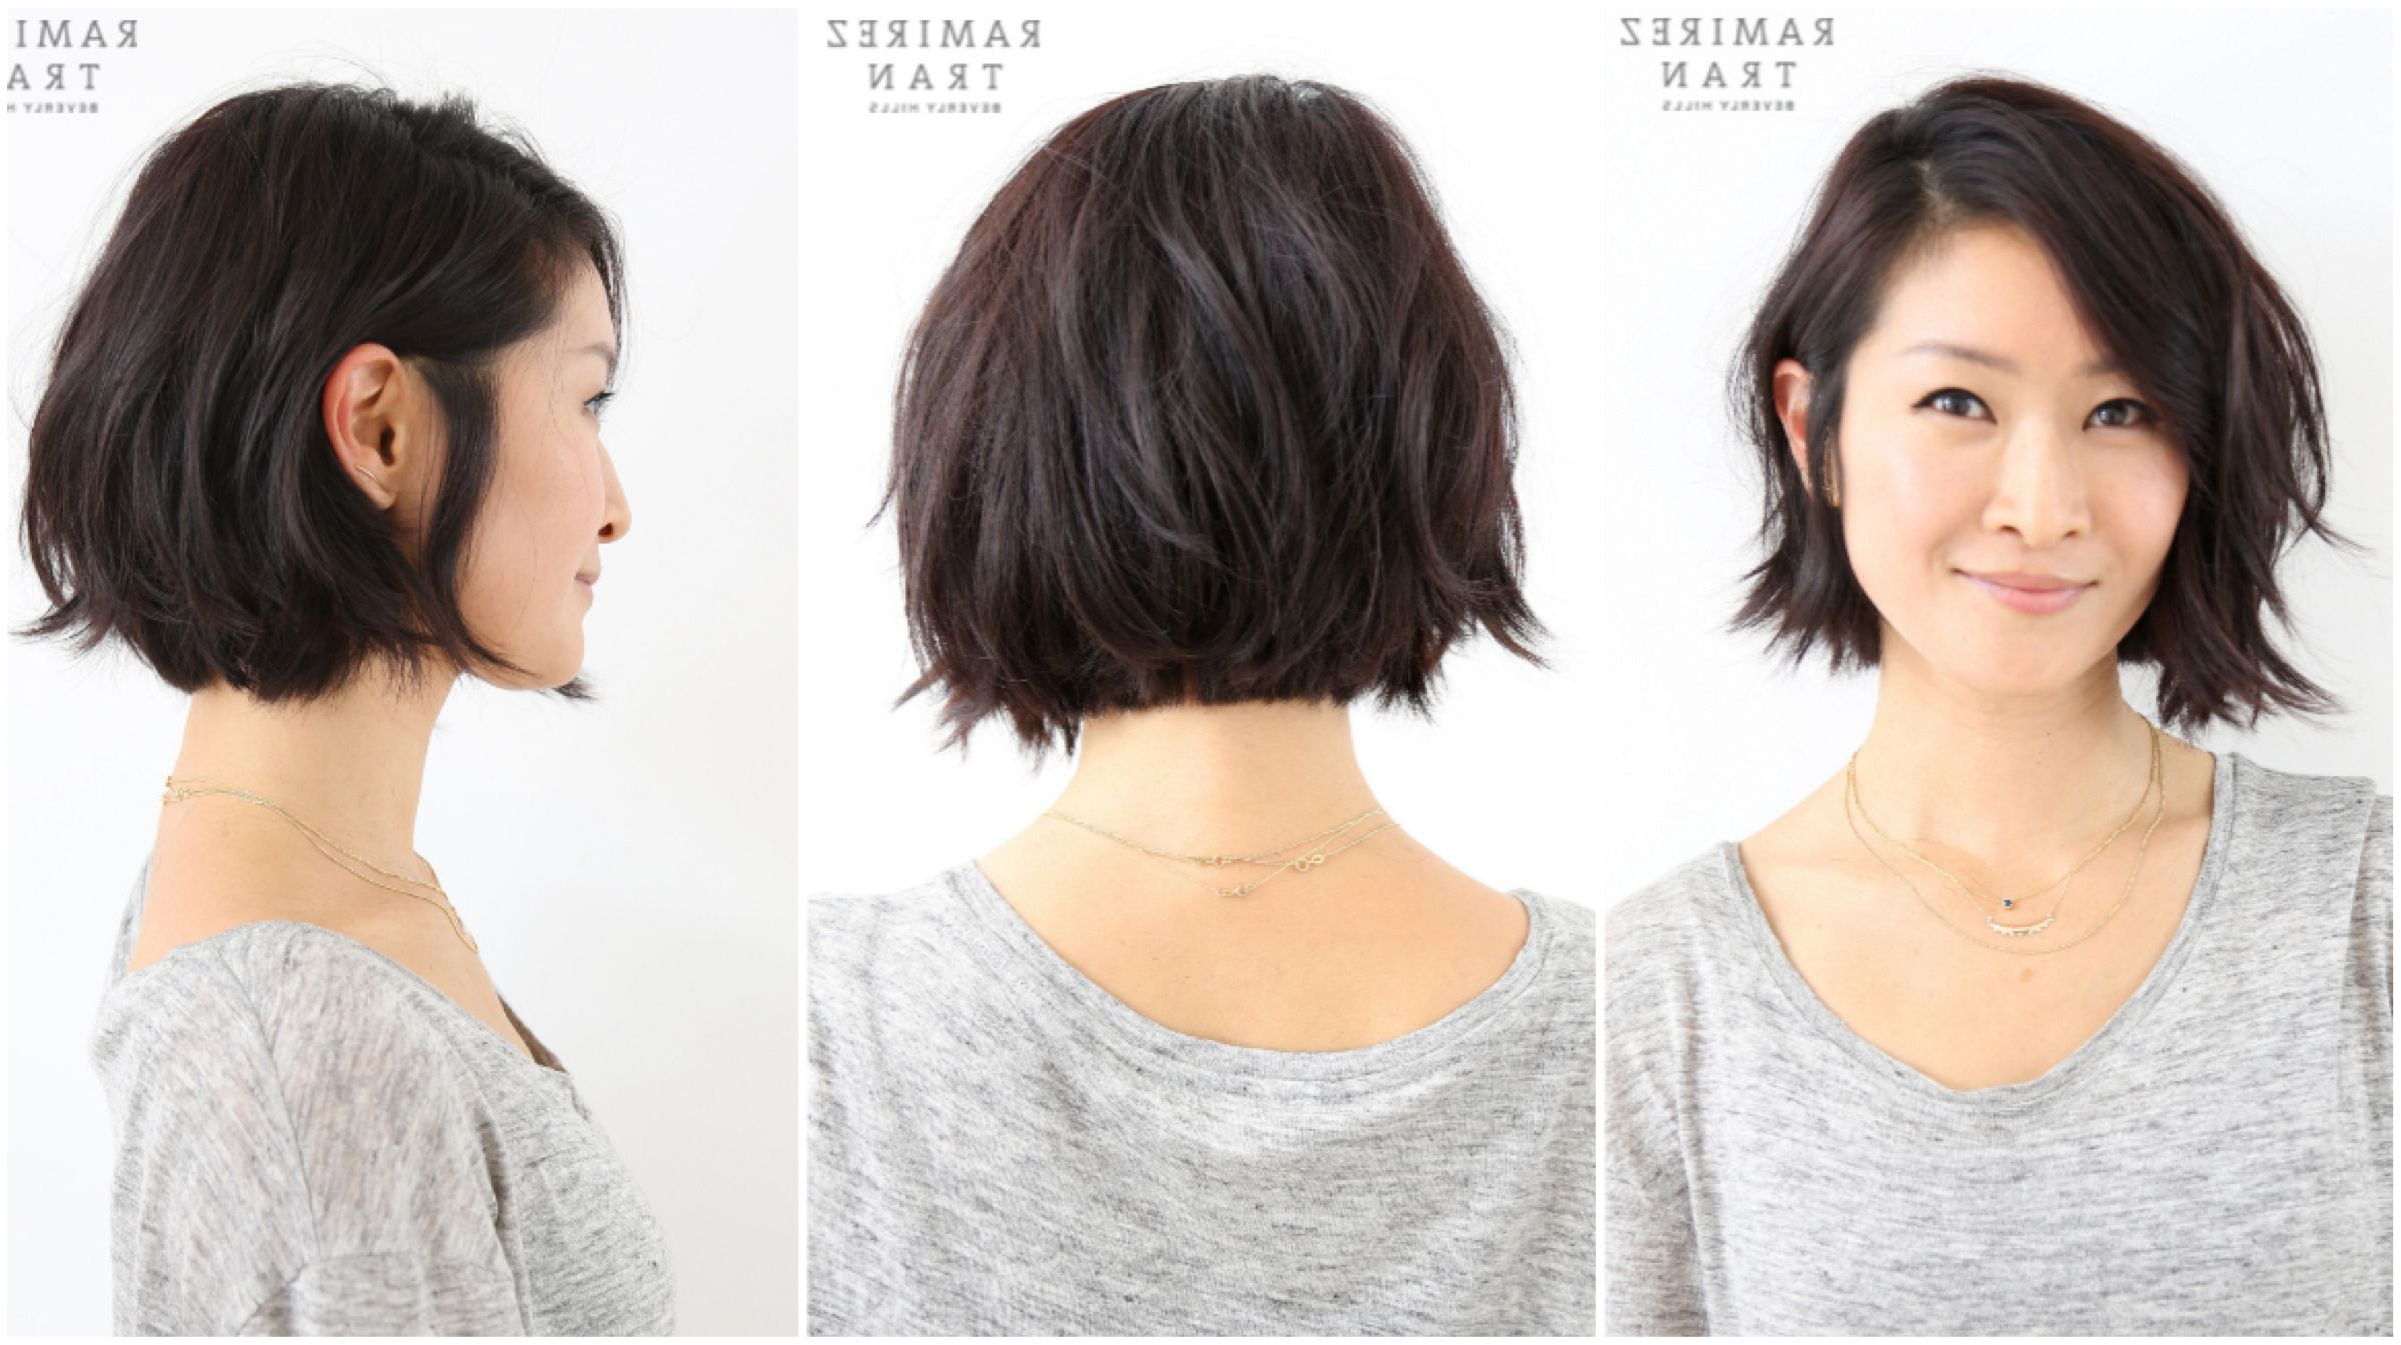 Pin On Hair Intended For Famous Asymmetrical Bob Asian Hairstyles (View 16 of 20)